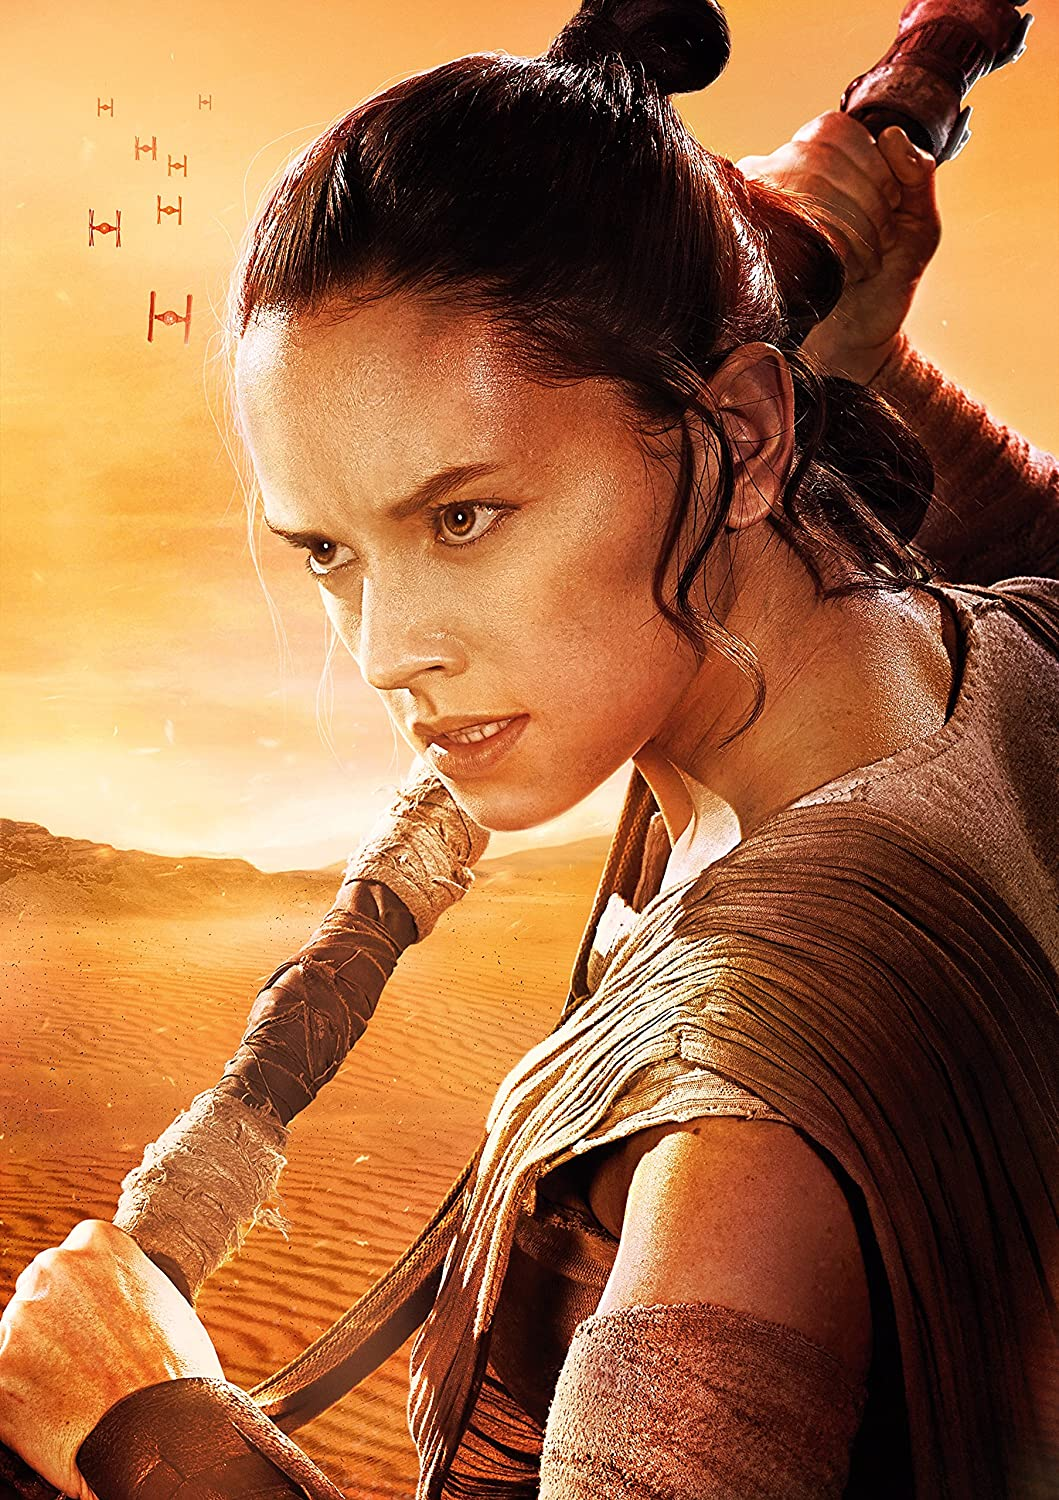 """Rey Poster - Star Wars: The Force Awakens 24"""" X 36"""" Movie Poster (Glossy Photo Paper) - No Text / Borderless"""